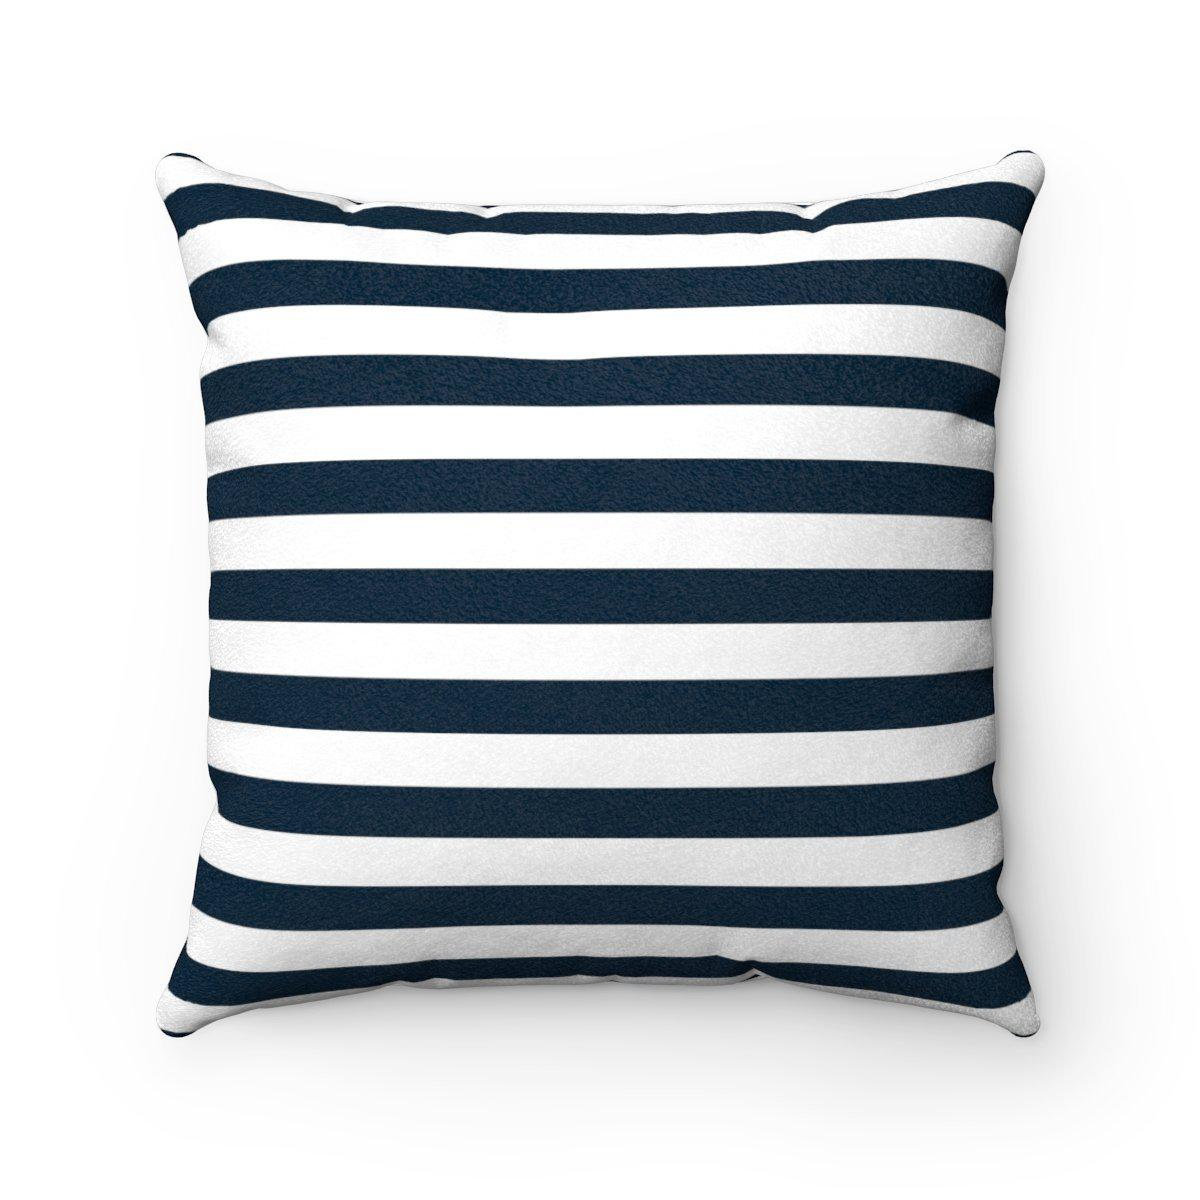 2 in 1 Double sided faux suede decorative striped pillow w/insert-Home Decor - Decorative Accents - Pillows & Throws - Decorative Pillows-Maison d'Elite-16x16-Très Elite